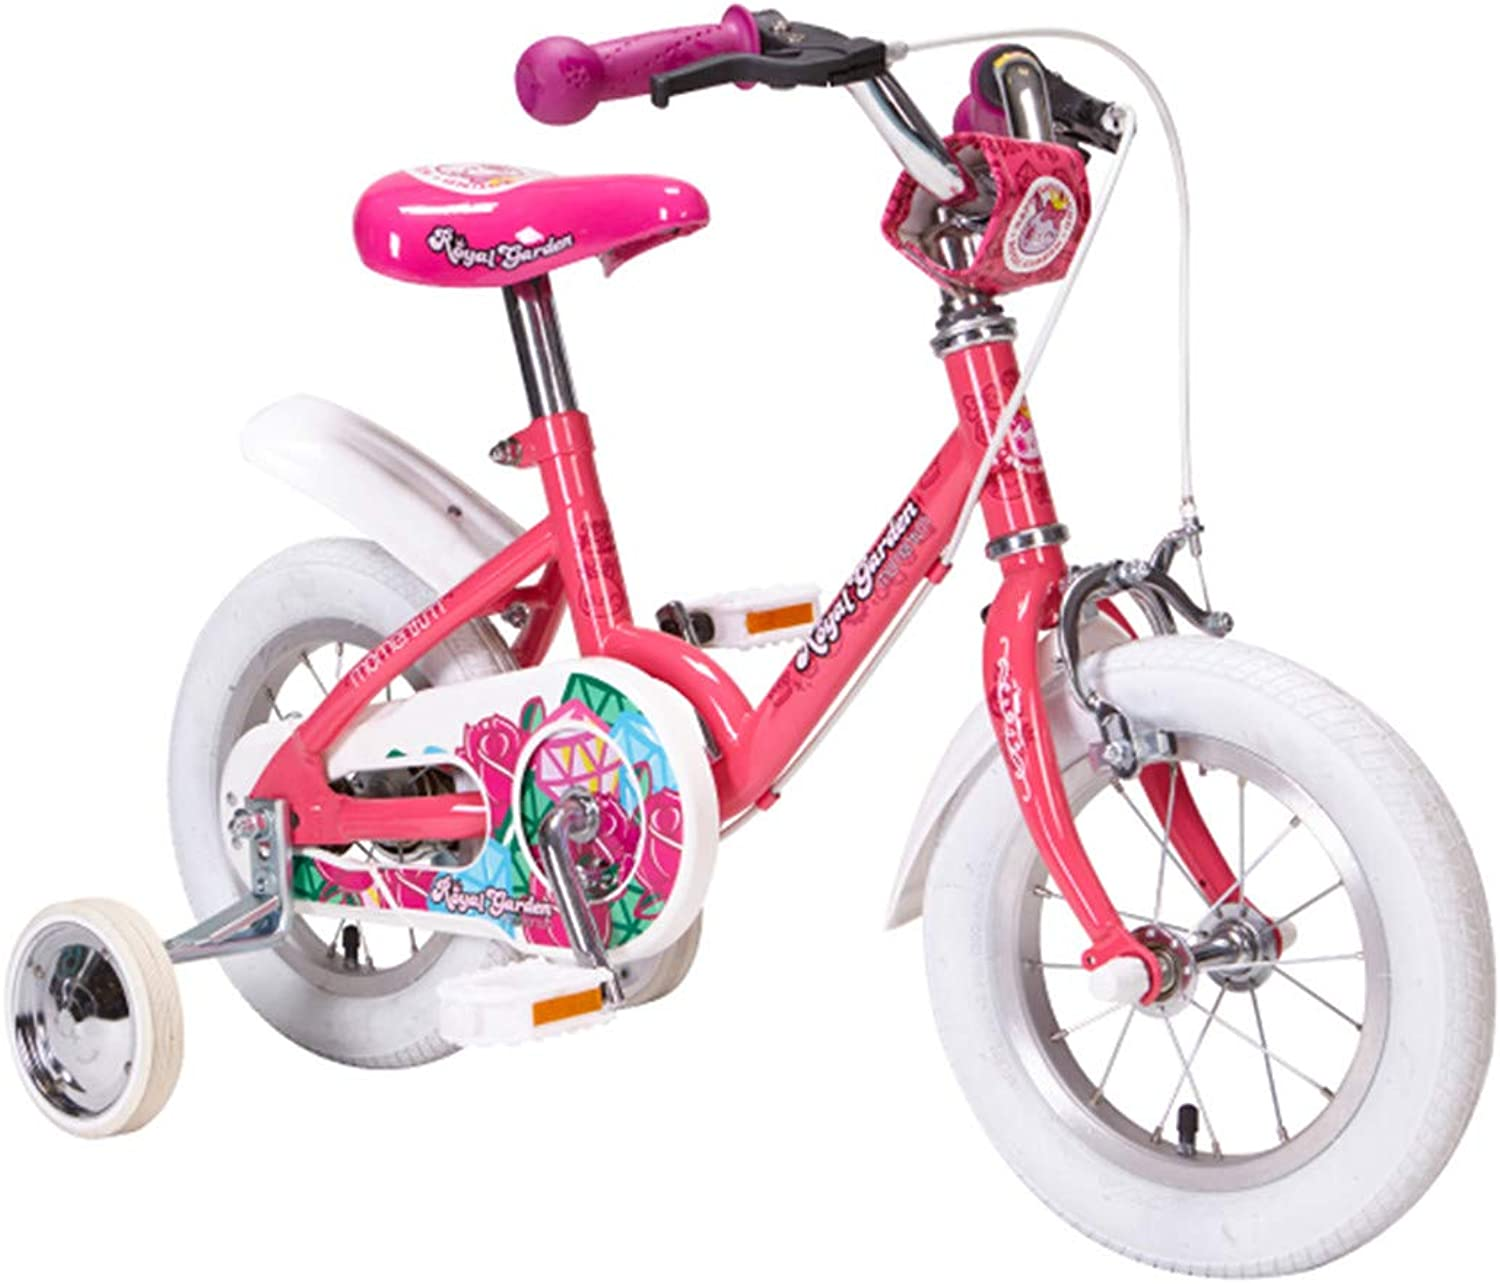 Kid Bike 12 Inch with Detachable Training Wheels Bicycle High Carbon Steel Frame for 90110 cm